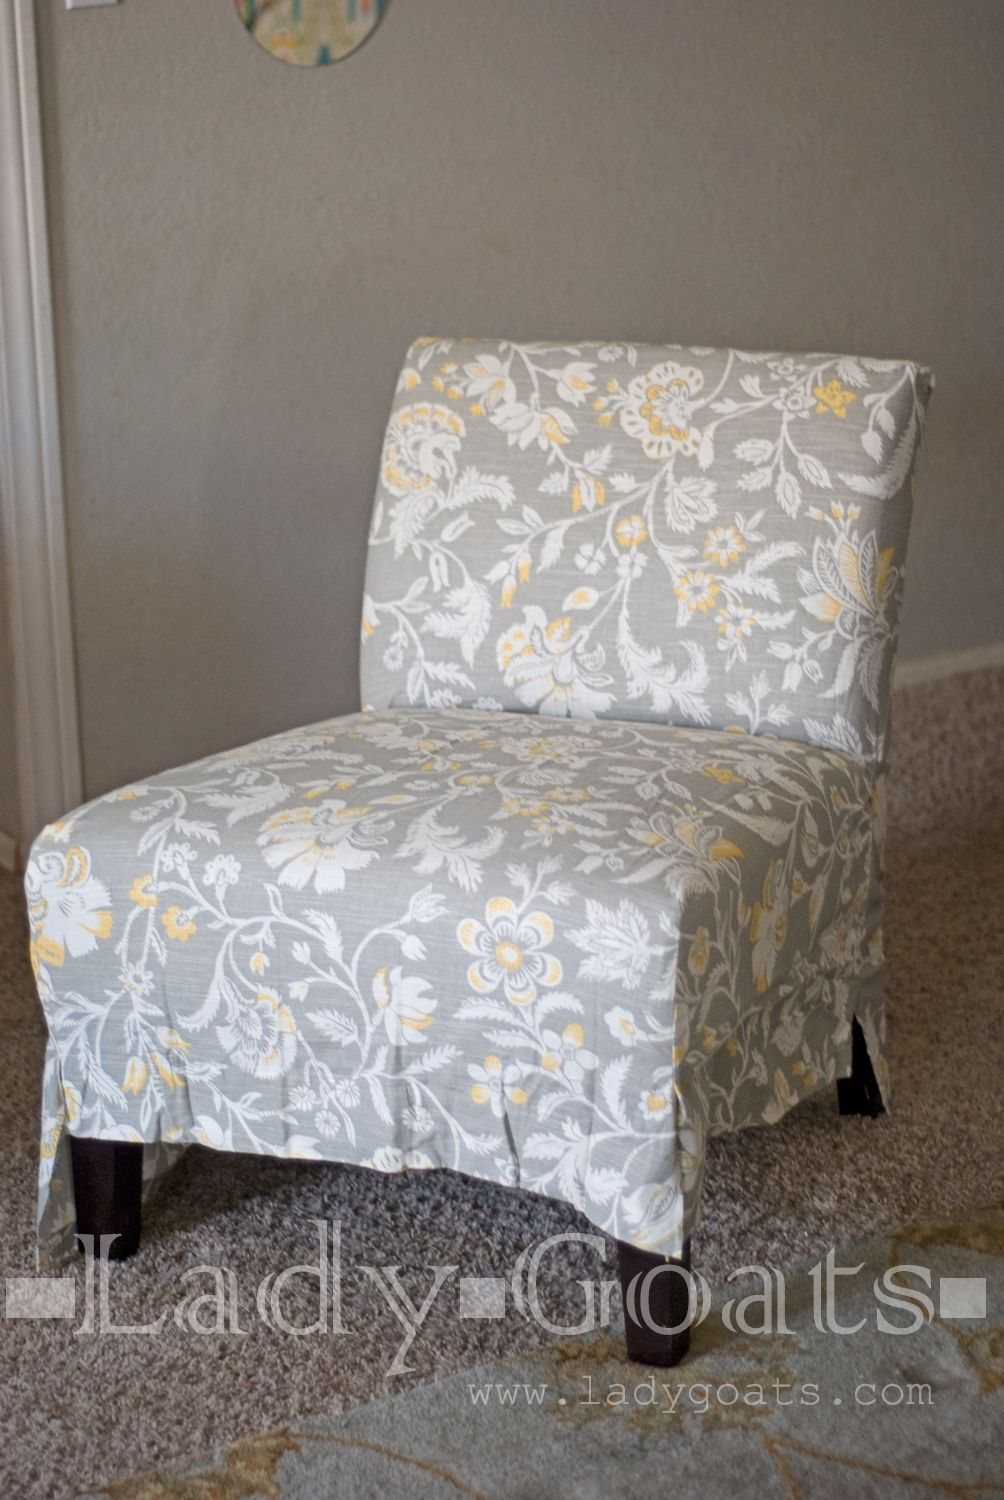 Raise your hand if upholstering freaks you out!!! --- Me too. Who ...